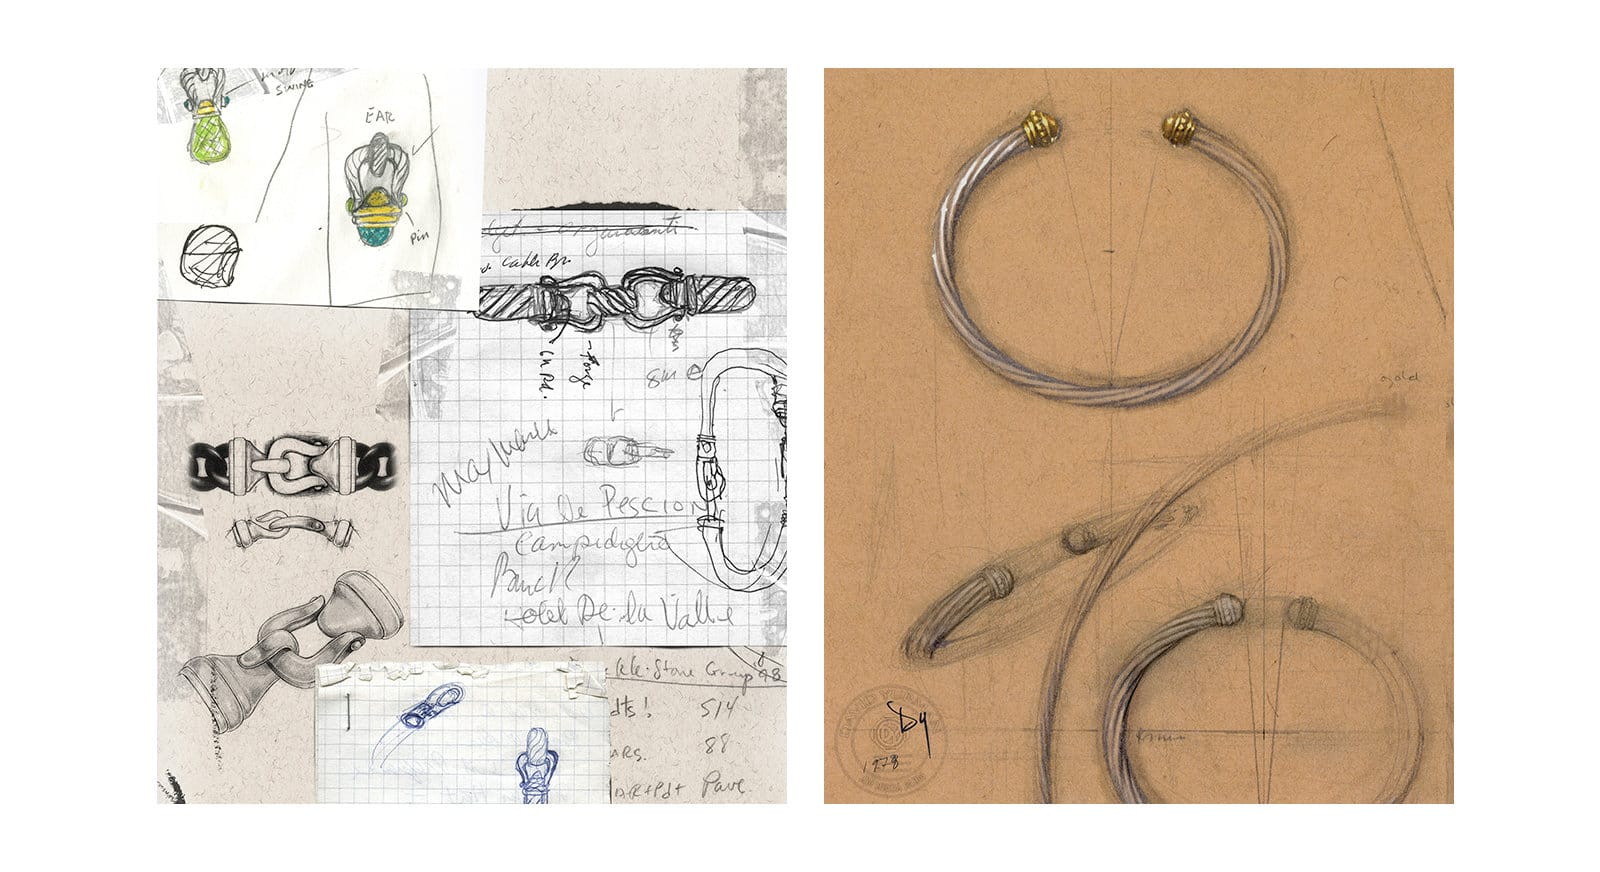 A collage of David Yurman's pencil-and-ink sketches of Buckle bracelets and clasps next to a pencil sketch of his trail bracelet with gold-colored end caps.